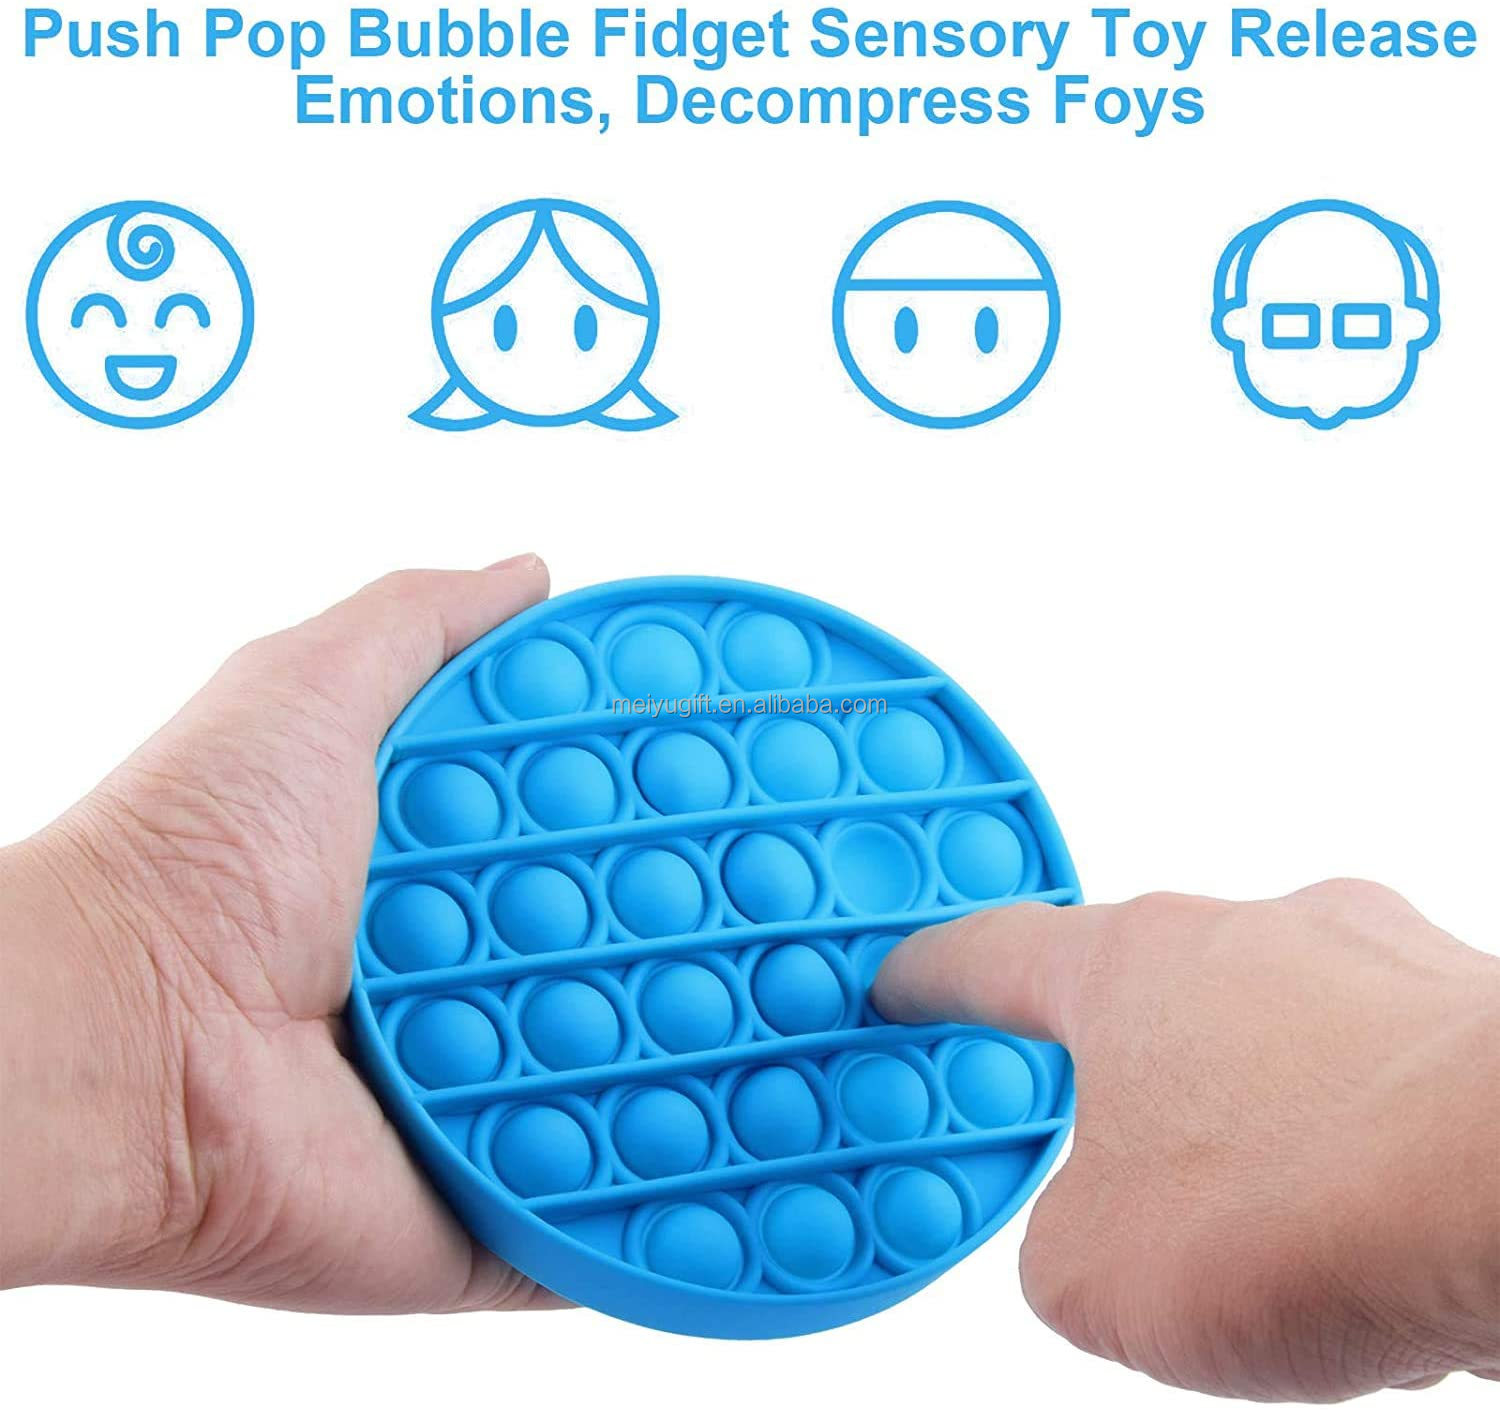 Premium Silicone Anxiety Stress Reliever Toys for Kids Adults BPA Free Durable Yellow, Round Push Pop Bubble Fidget Sensory Toy